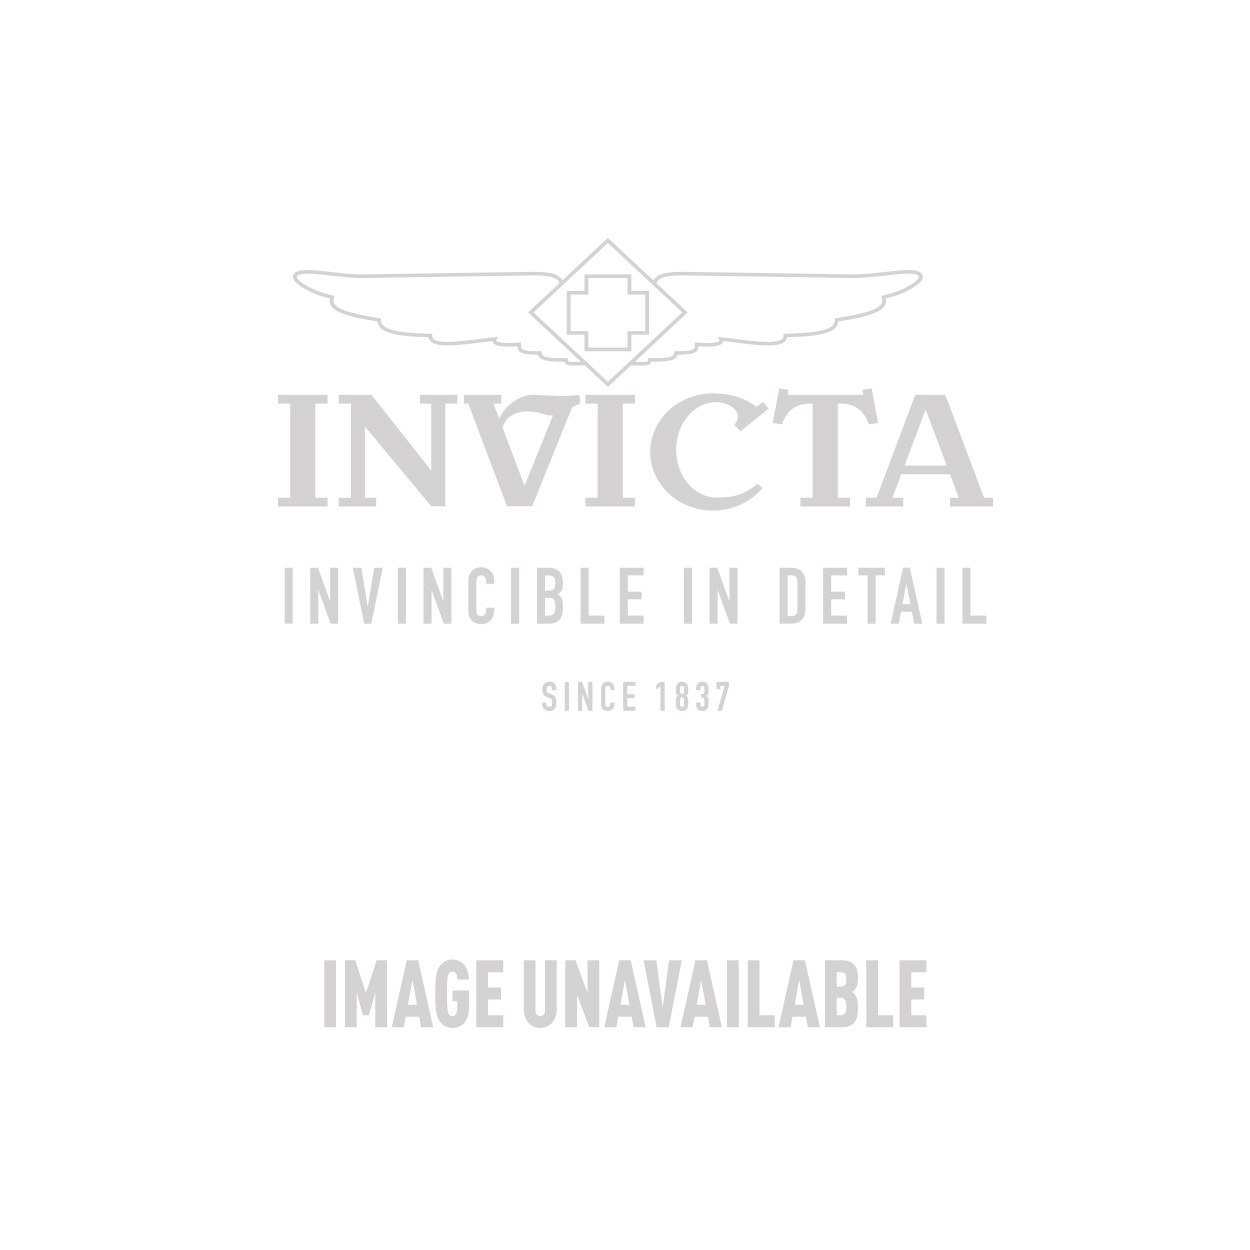 Invicta S. Coifman Swiss Movement Quartz Watch - Stainless Steel case Stainless Steel band - Model SC0336